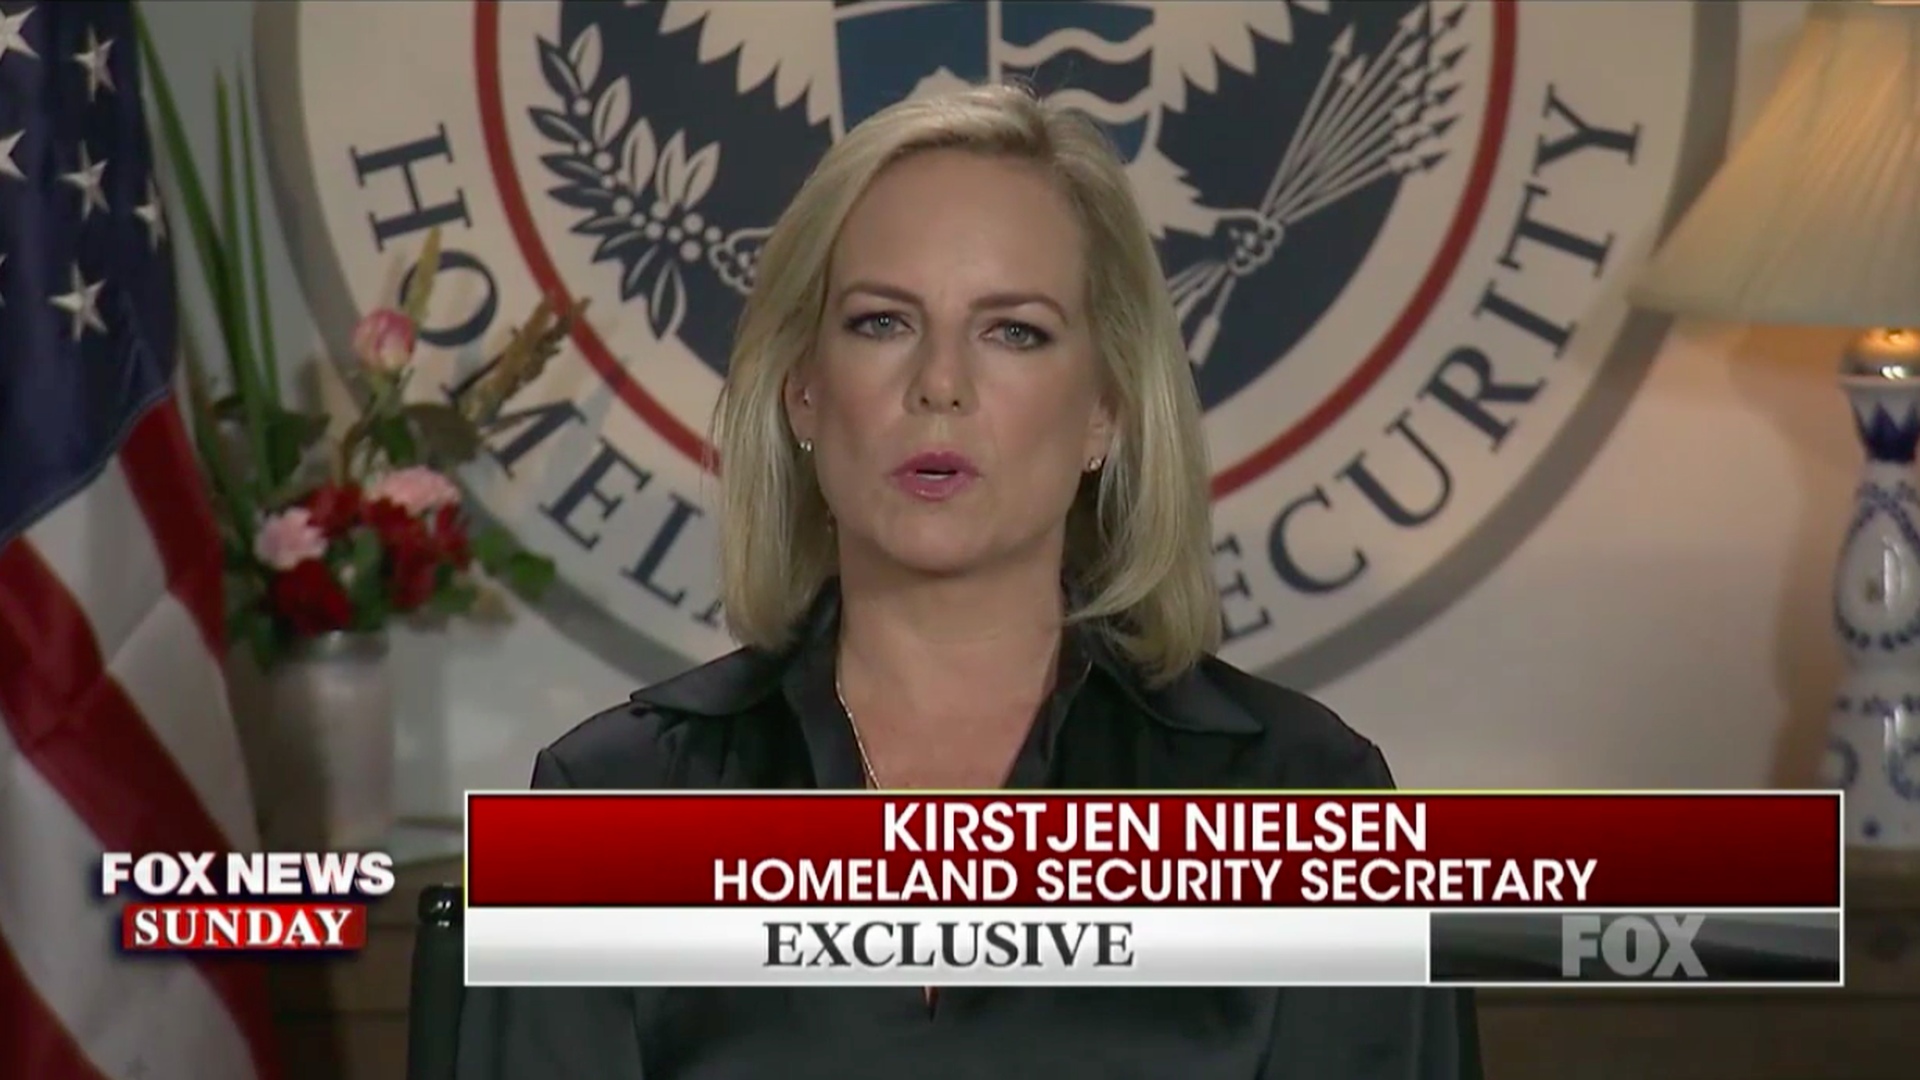 Kirstjen Nielsen on Fox